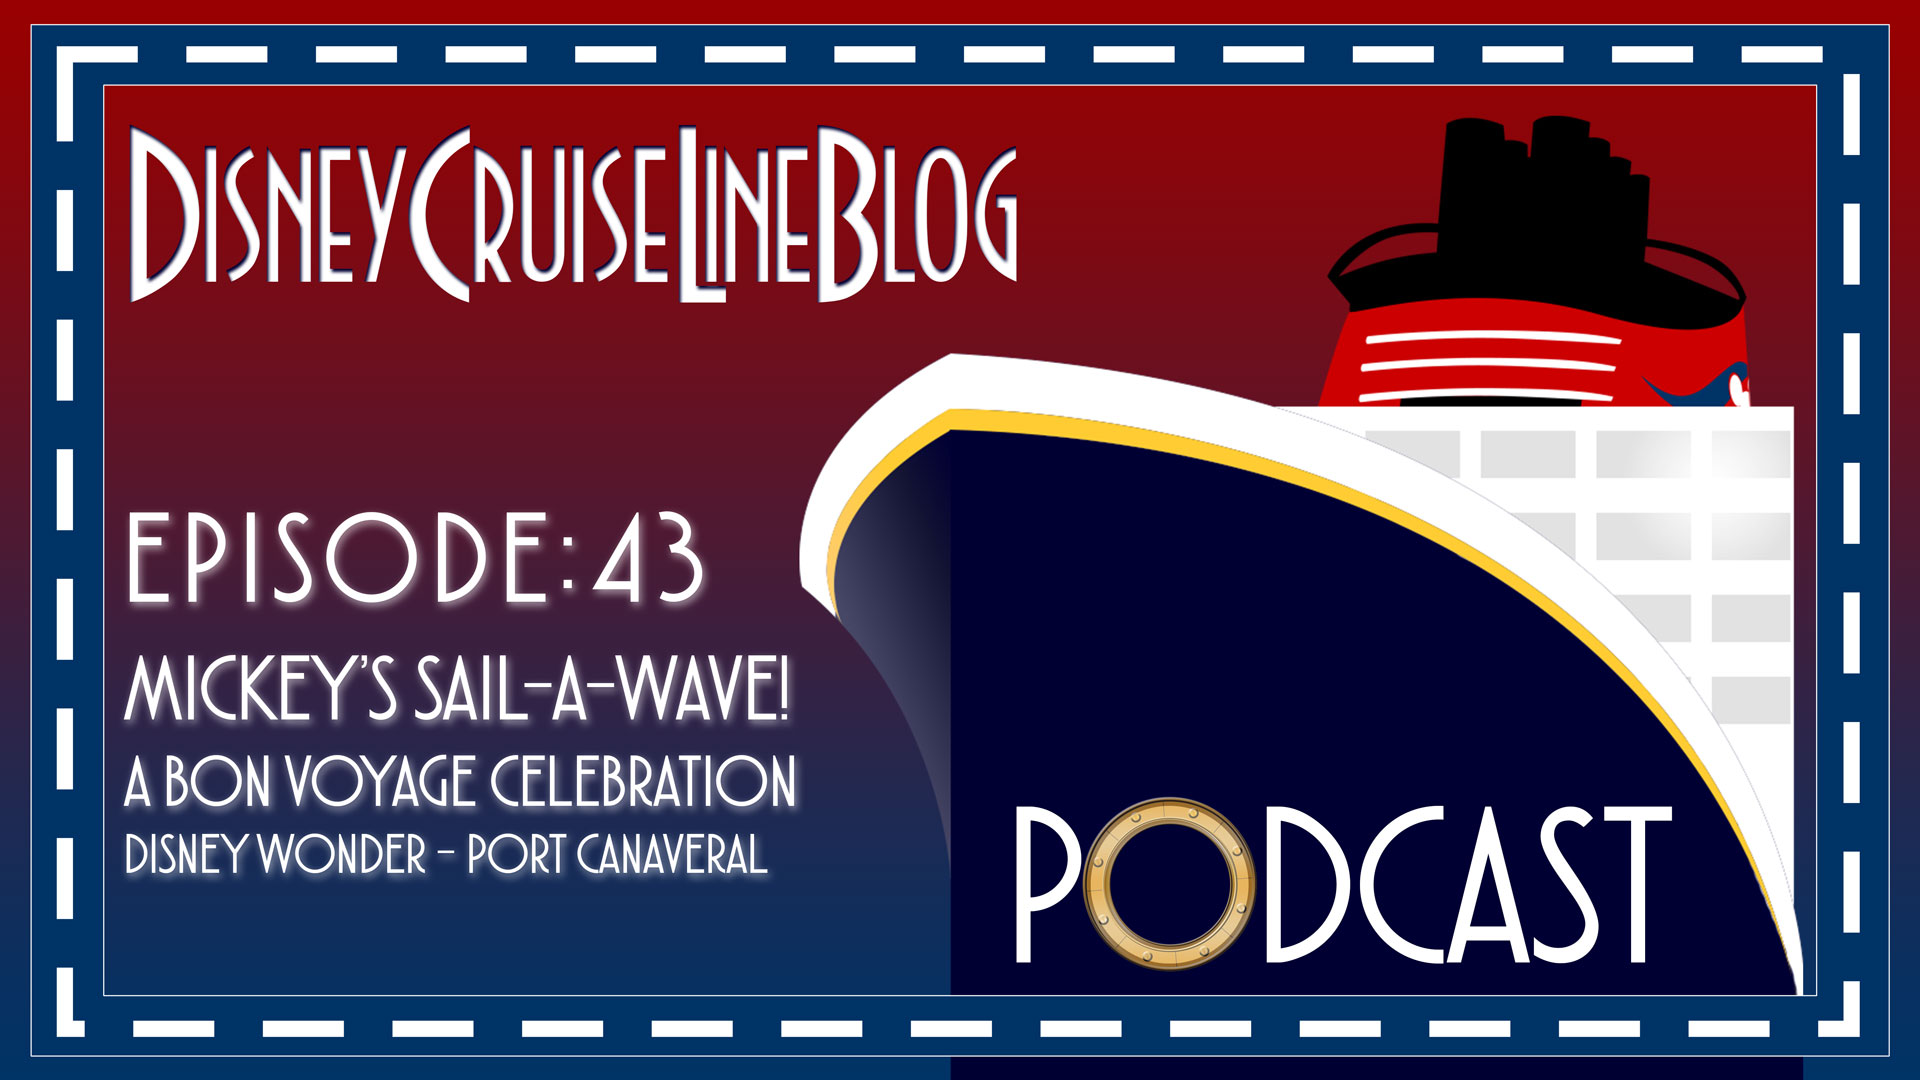 DCL Blog Podcast Episode 43 Mickeys Sail A Wave